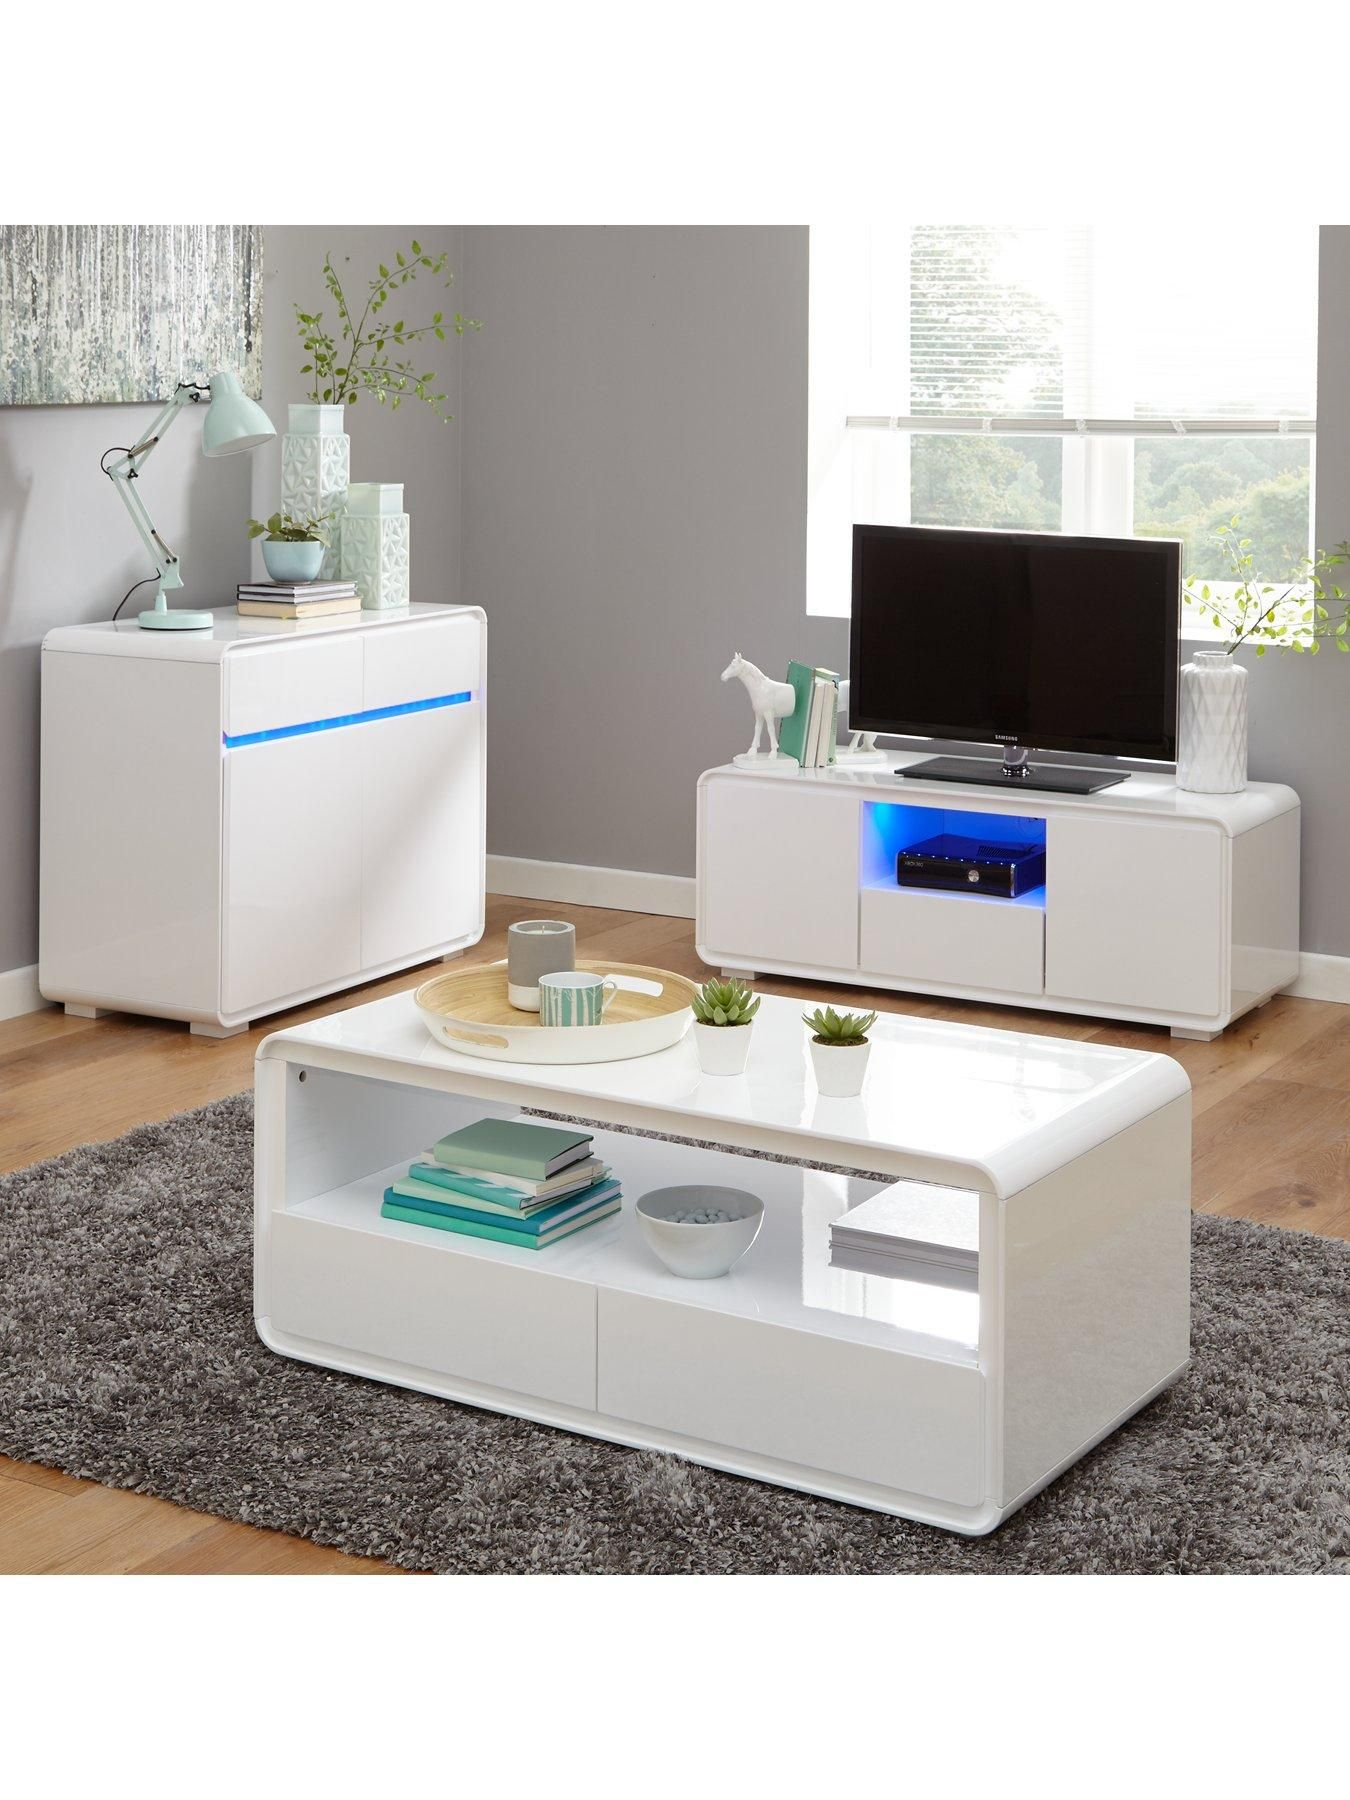 Couchtisch Beton Natura Memphis Womens Mens And Kids Fashion Furniture Electricals More